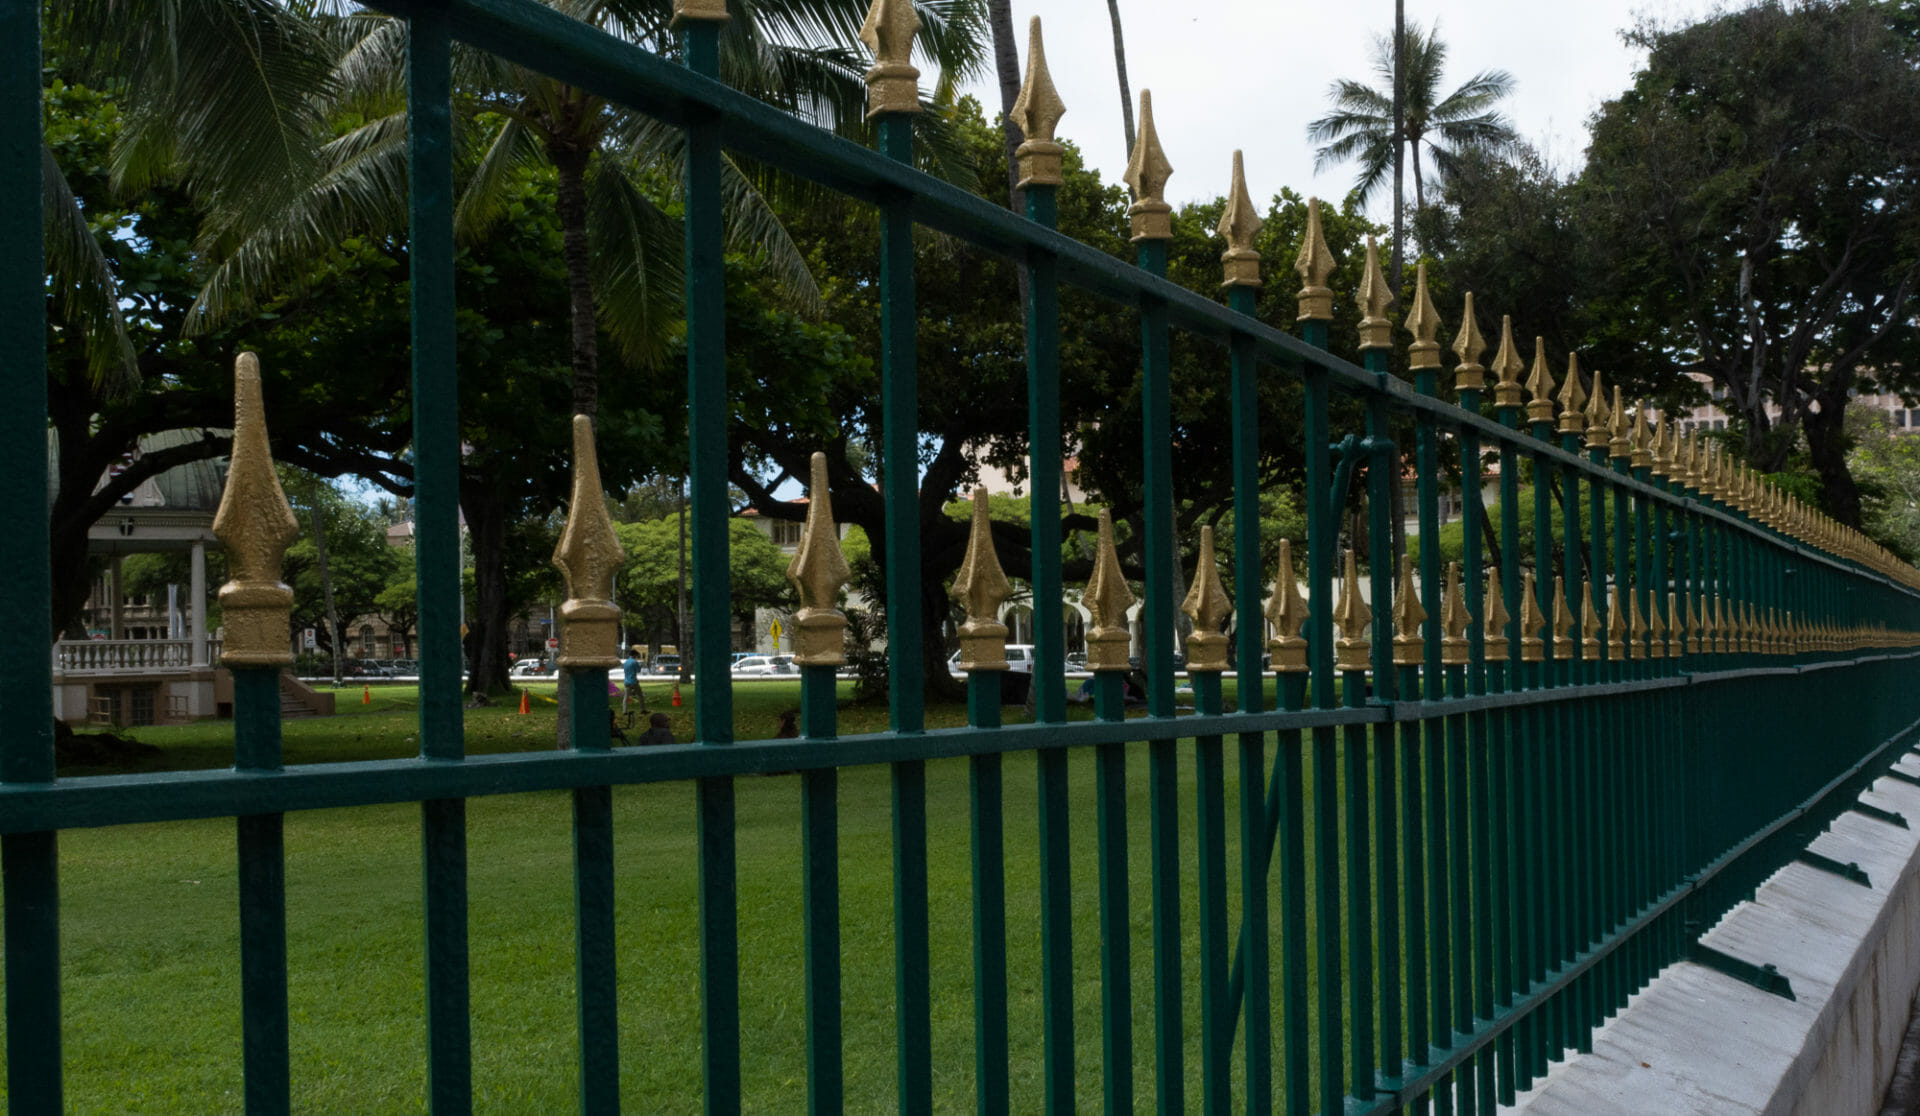 Fence at 'Iolani Palace in Honolulu